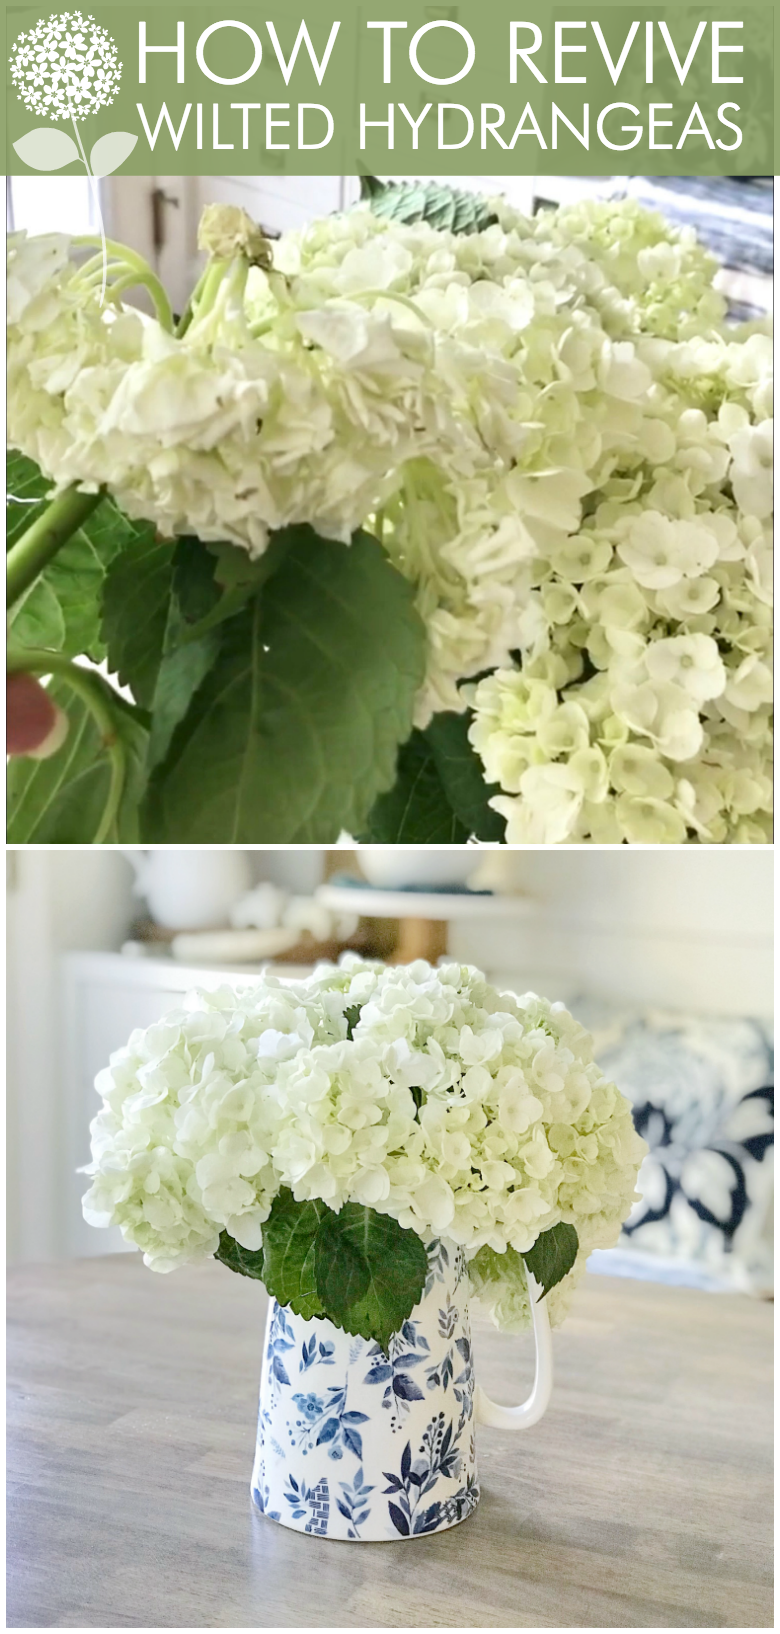 Flower Hack Easy Tip On How To Revive Wilted Hydrangeas Hydrangea Care Wilted Flowers Planting Hydrangeas